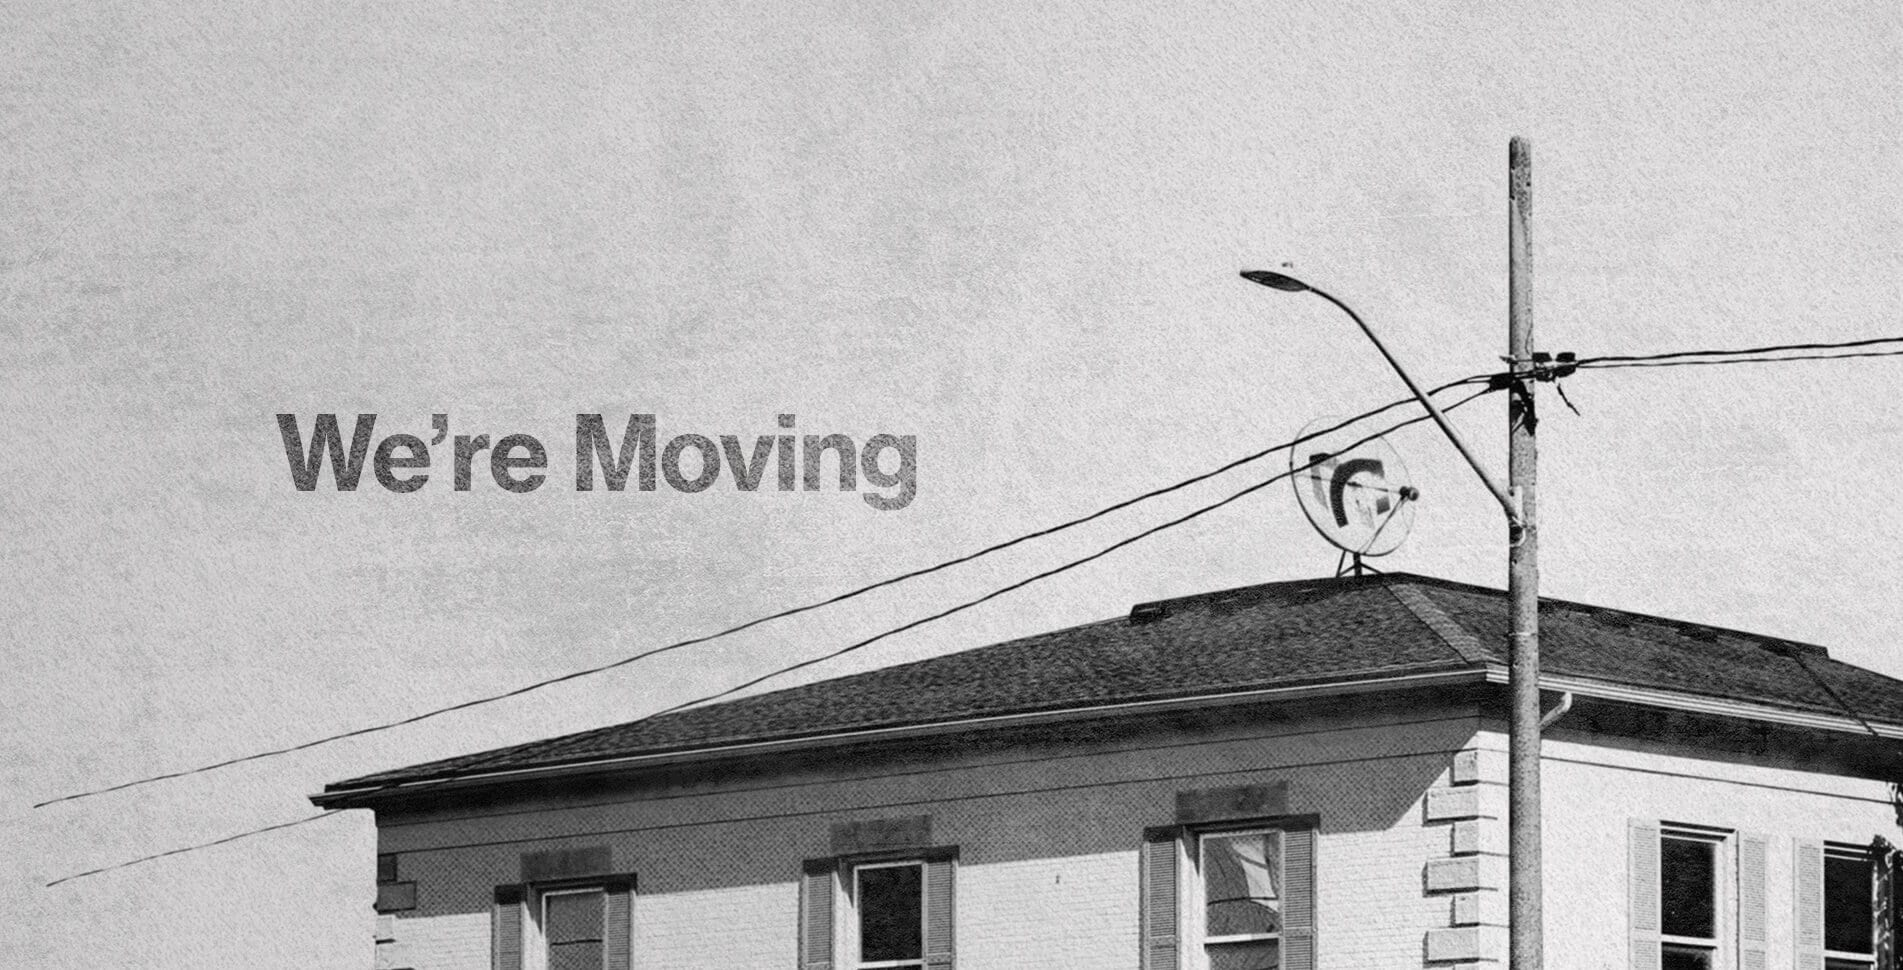 We're moving announcement